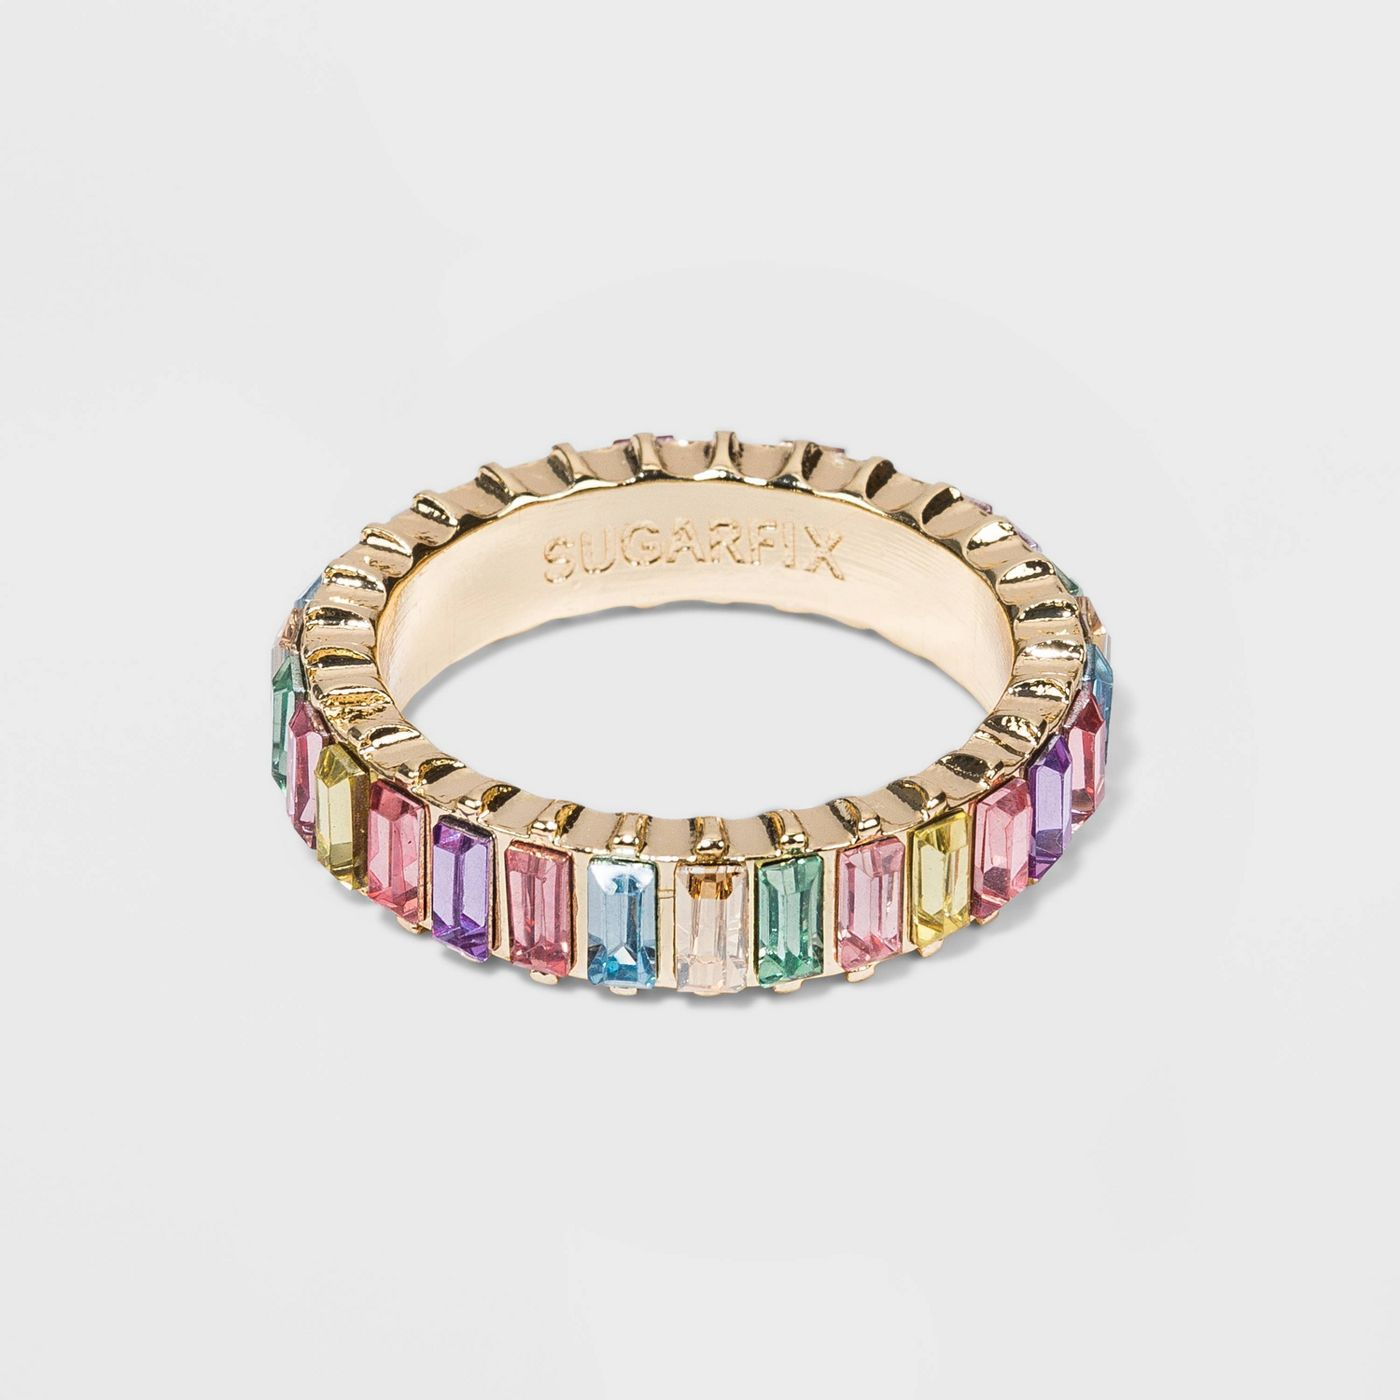 SUGARFIX by BaubleBar Baguette Light Pastel Rainbow Crystal Statement Ring - image 1 of 6